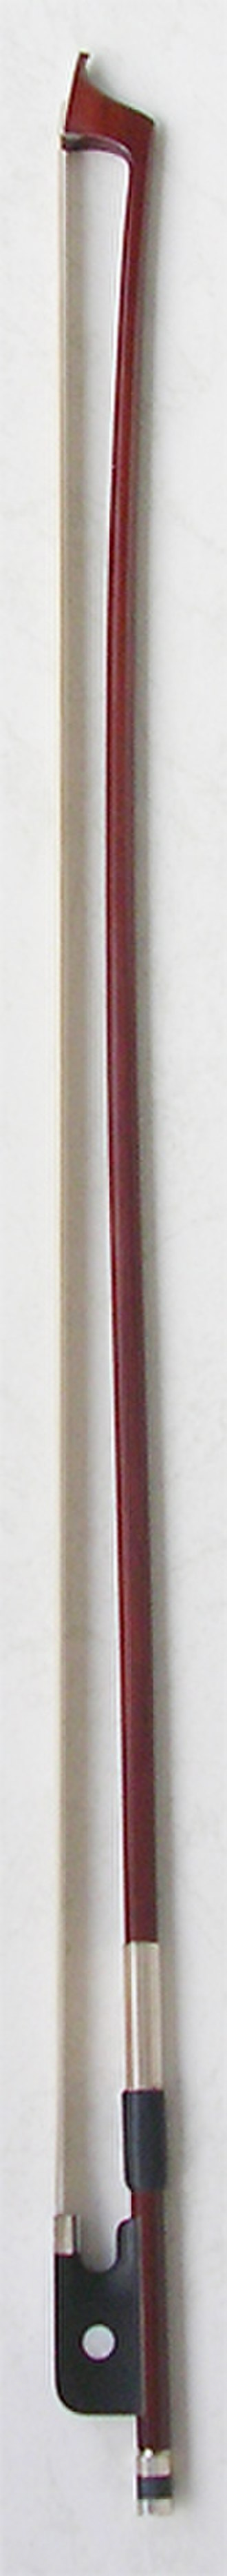 Bow (music) - A cello bow